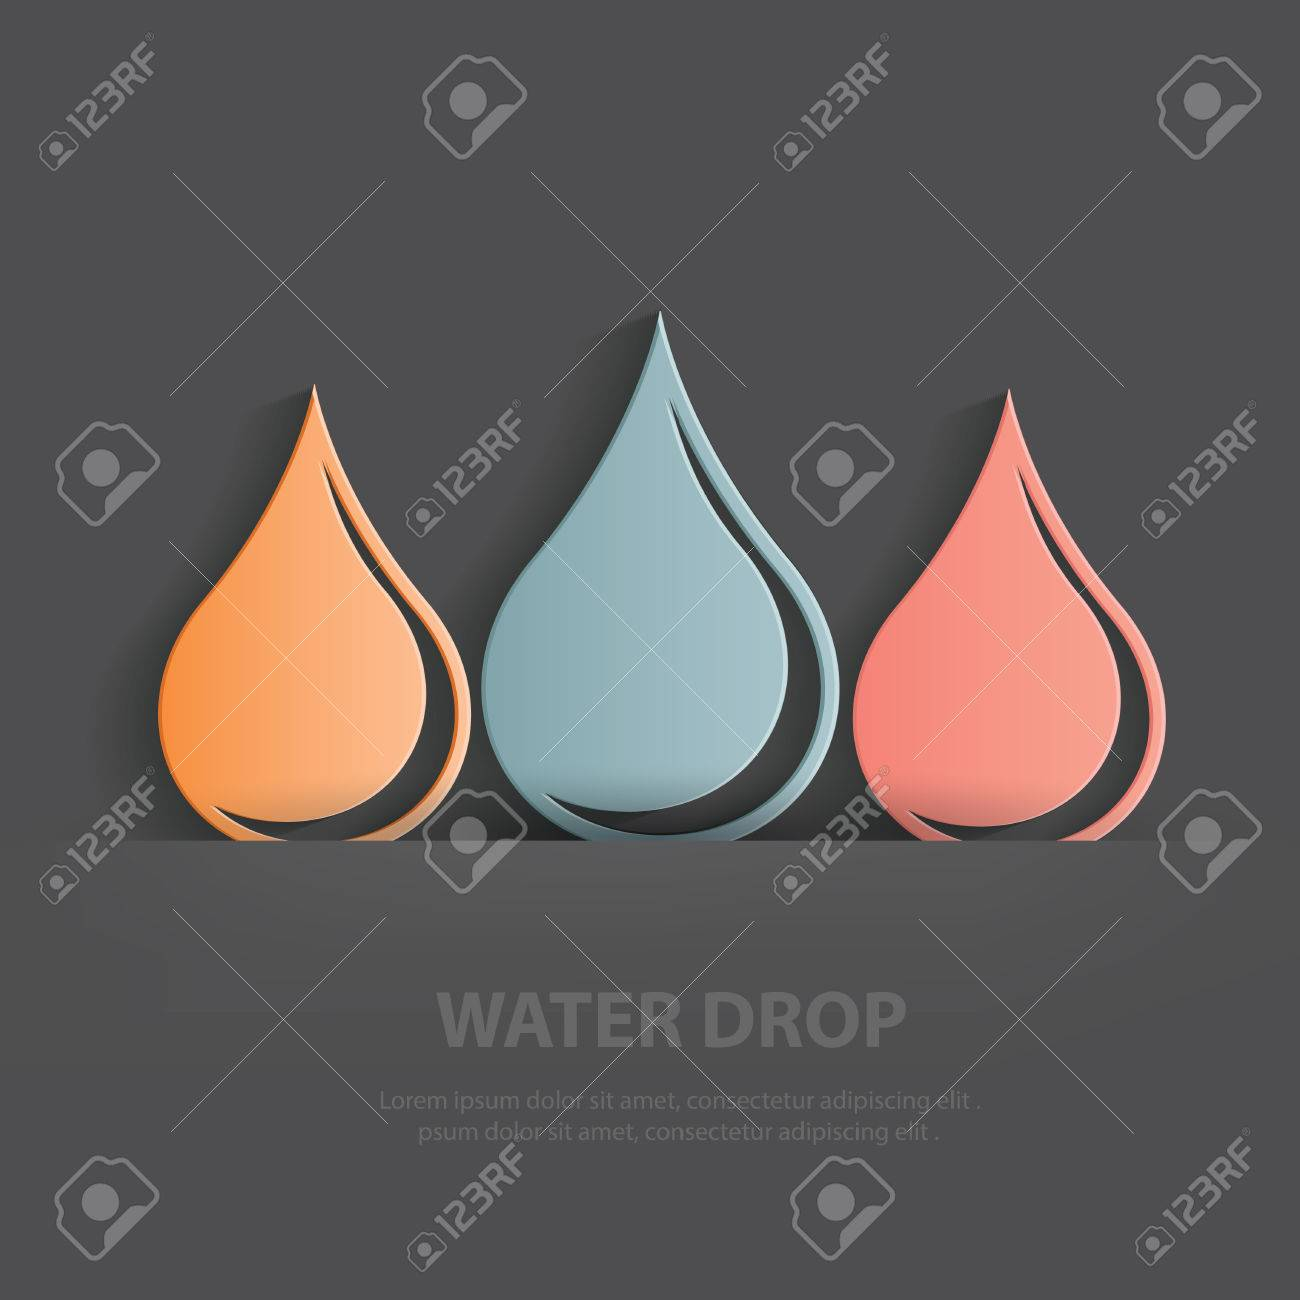 Water drop symbolblank for your text royalty free cliparts water drop symbolblank for your text stock vector 33513841 biocorpaavc Image collections